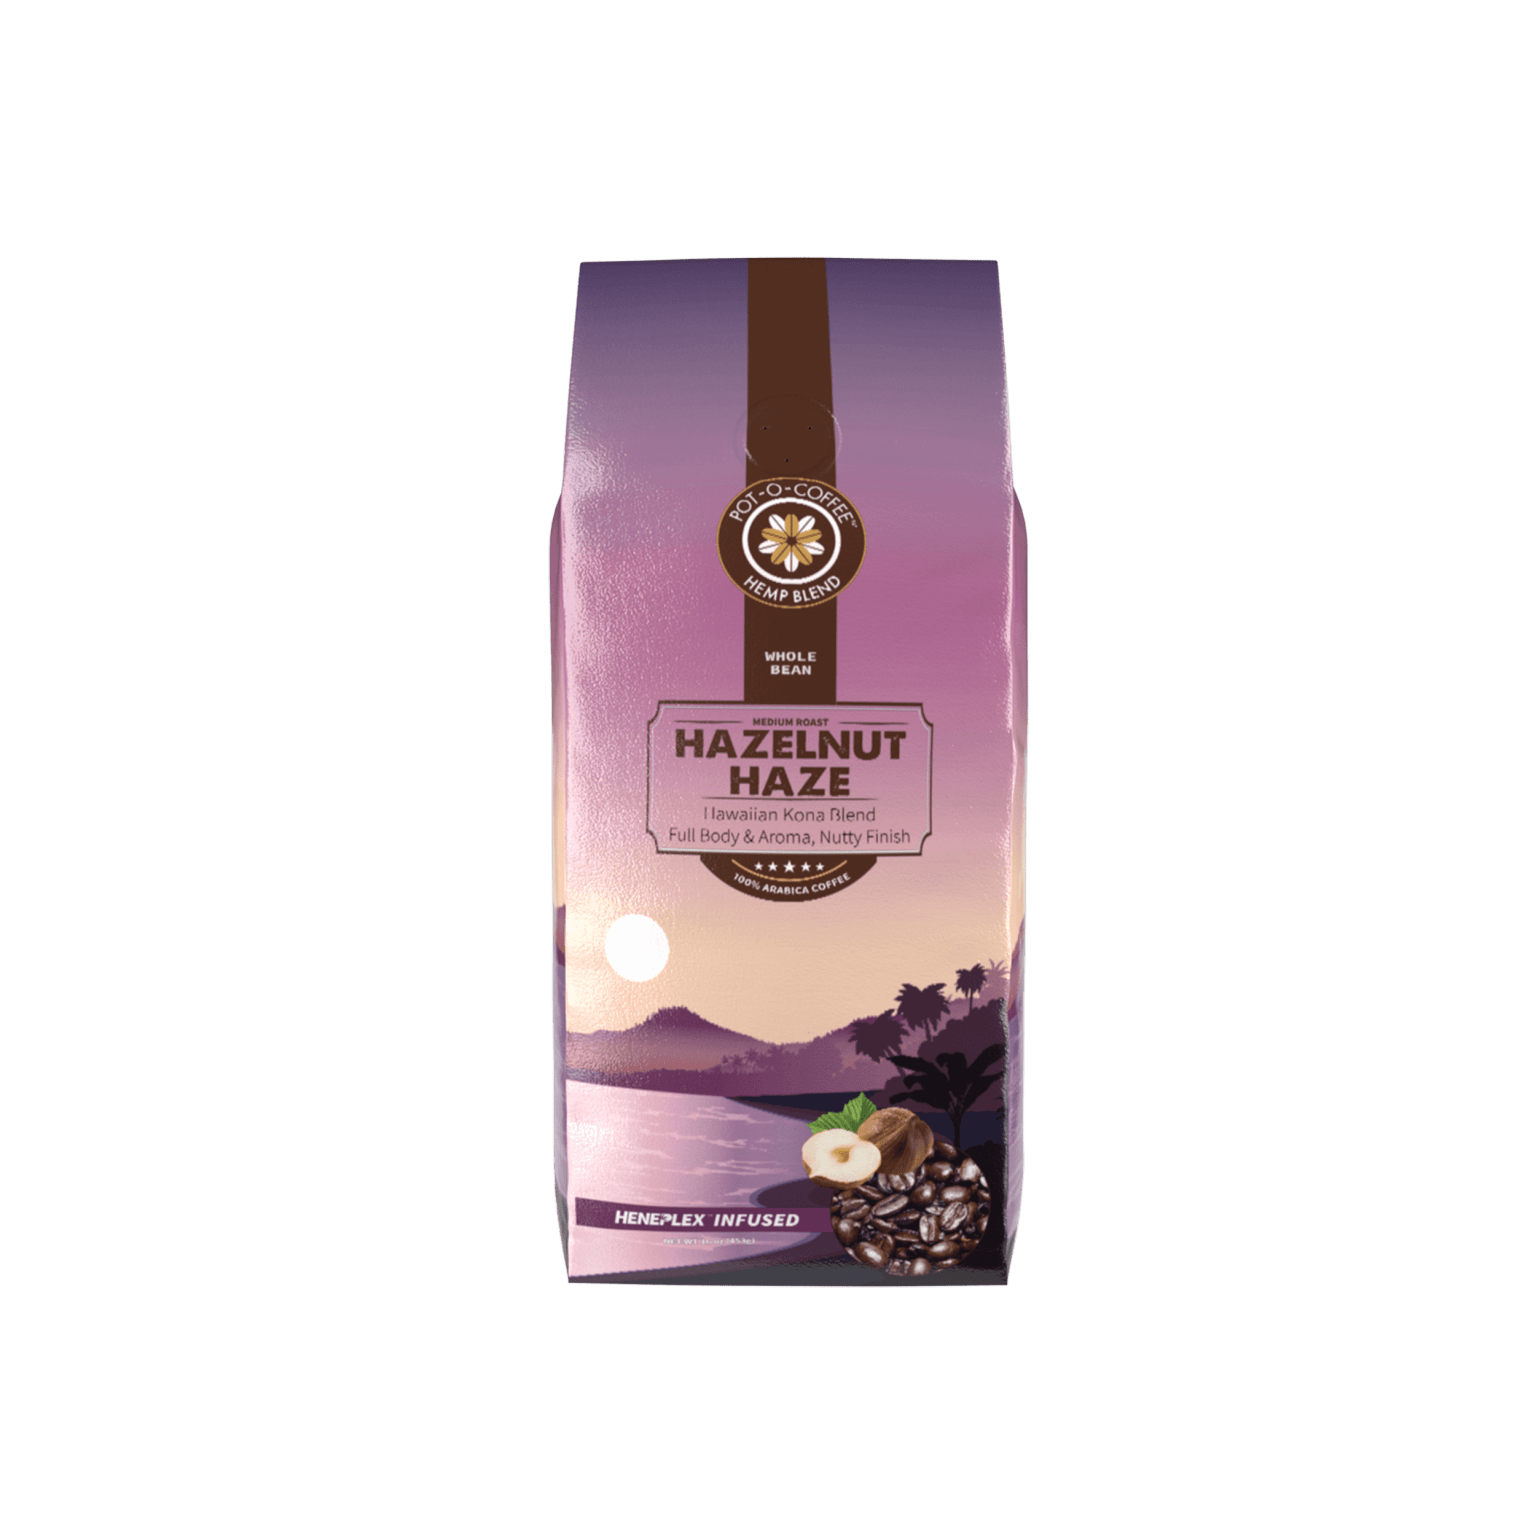 Pot-O-Coffee Hazelnut Haze – Bag